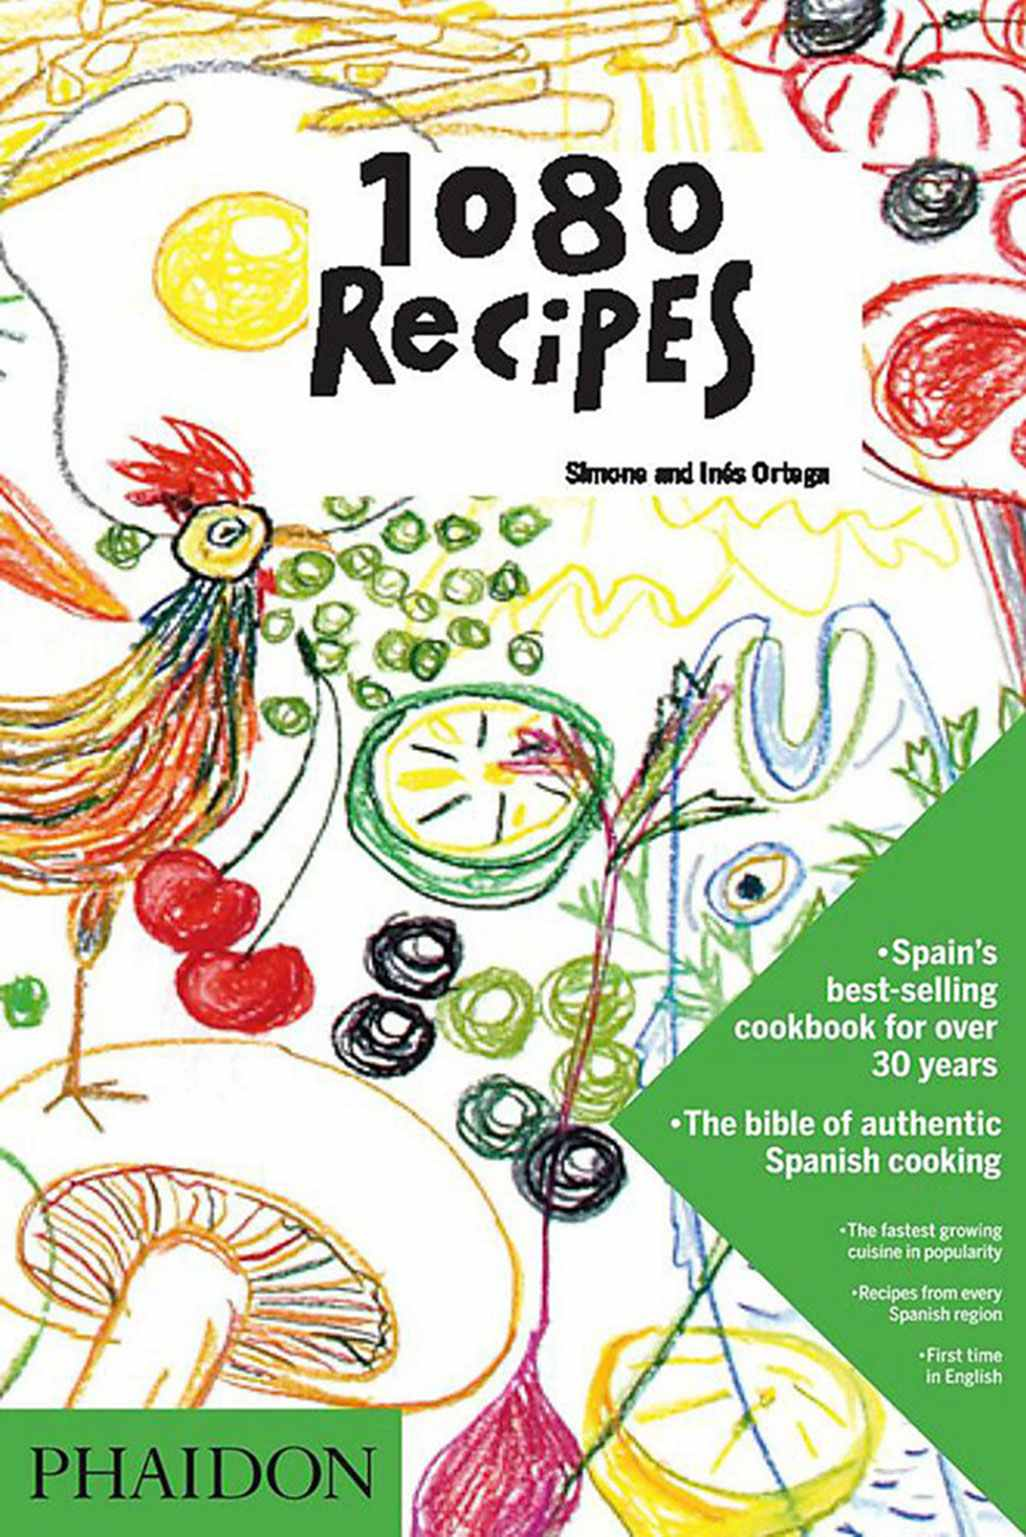 Top 3 Spanish Food Cookbooks